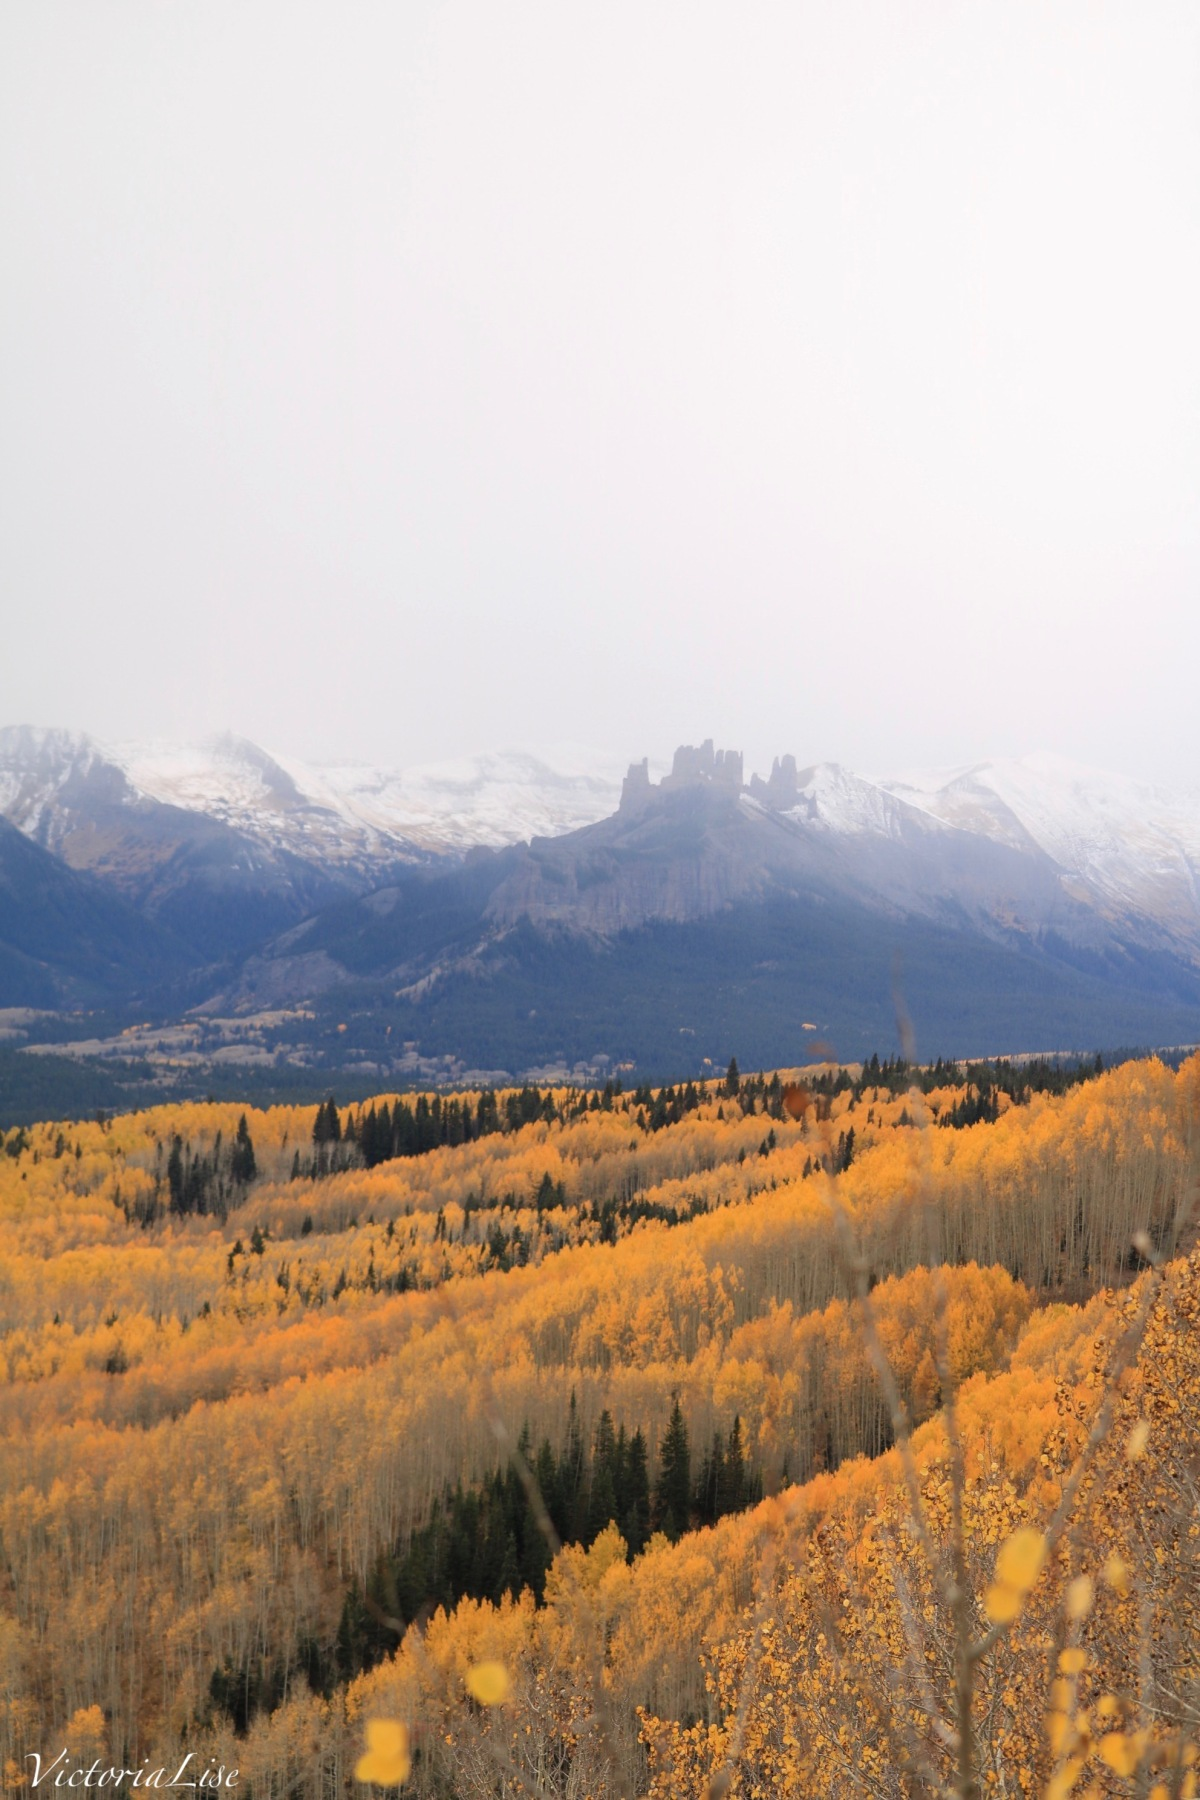 Golden Aspen grove below snowcapped mountains and rock castles. ©Victoria Lise 2018.